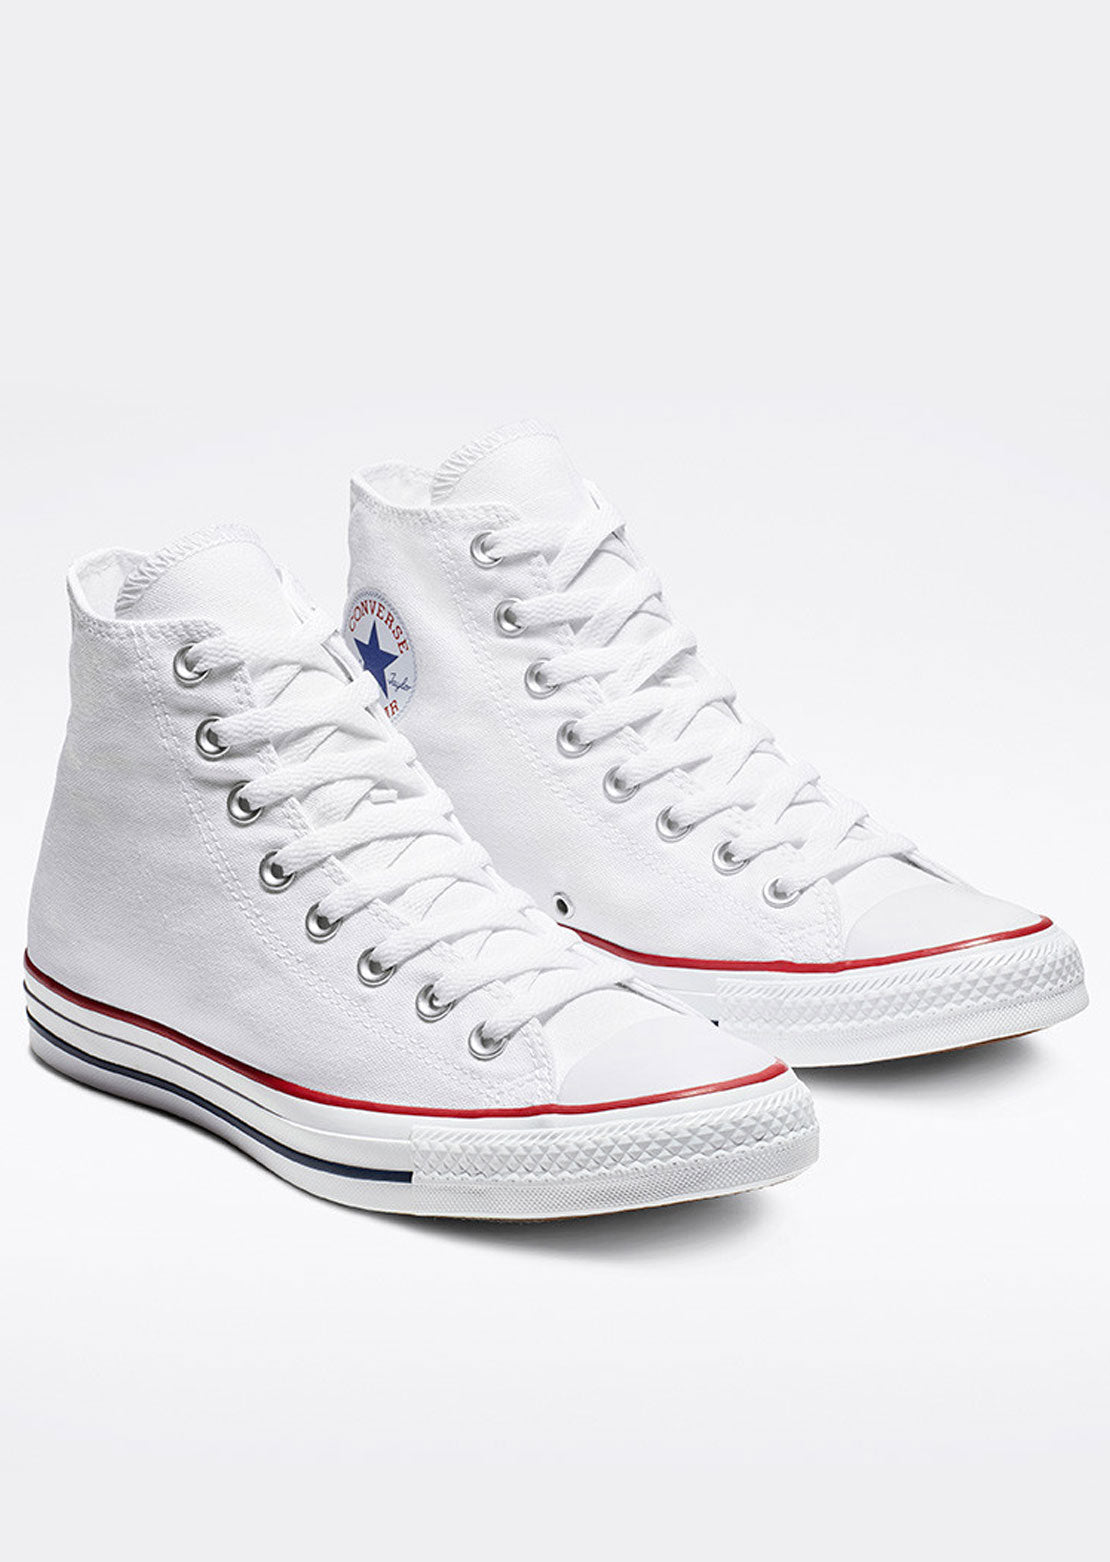 Converse Unisex Chuck Taylor All Star Hi Top Shoes Optical White